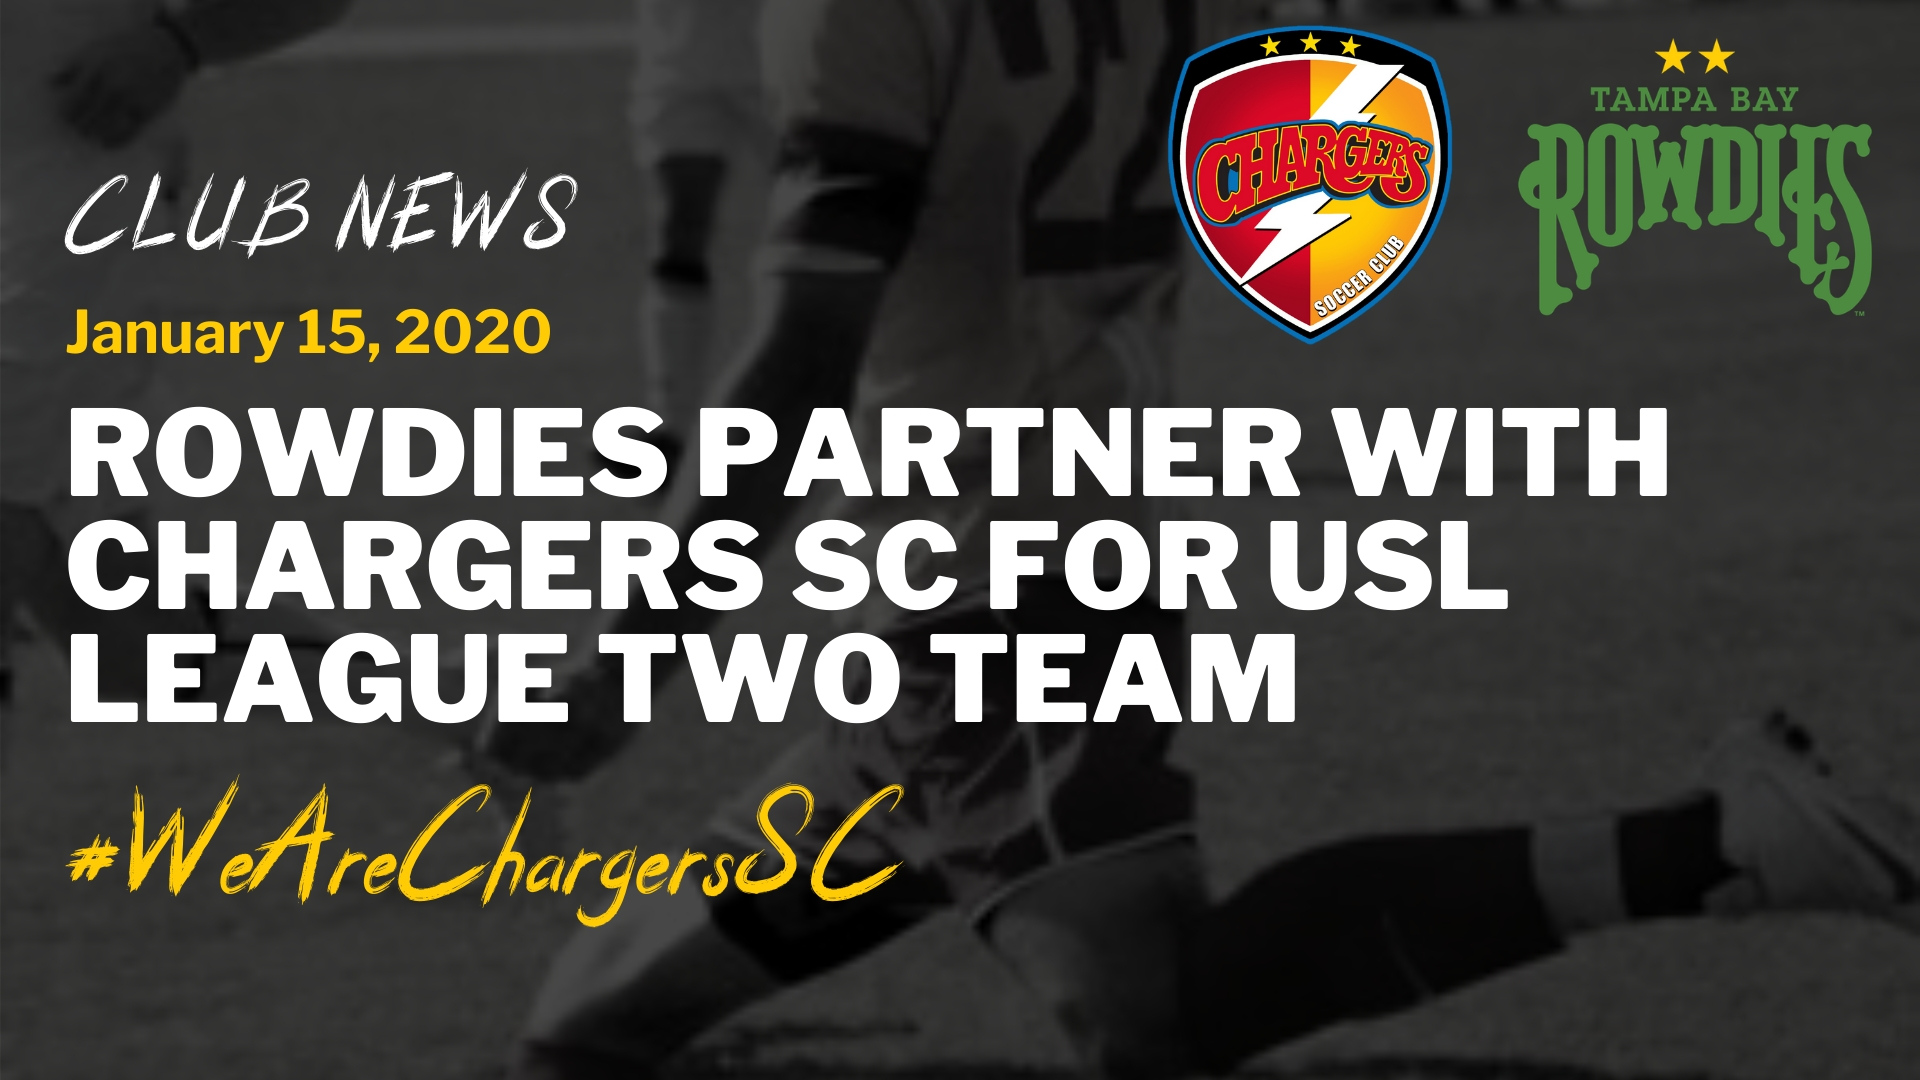 Rowdies / Chargers New Partnership